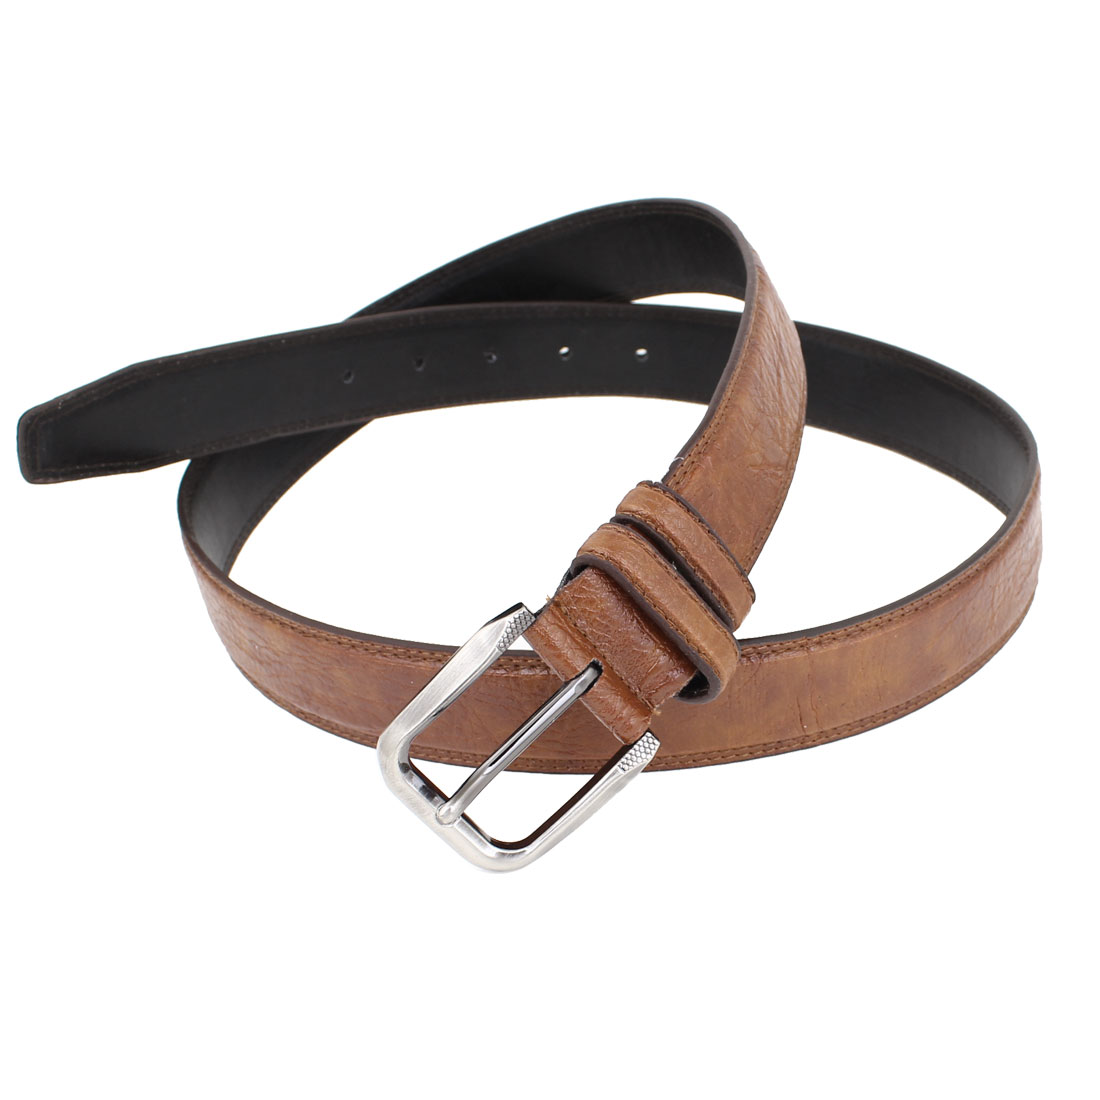 Brown Faux Leather Single Pin Buckle Adjustable Waist Belt for Men